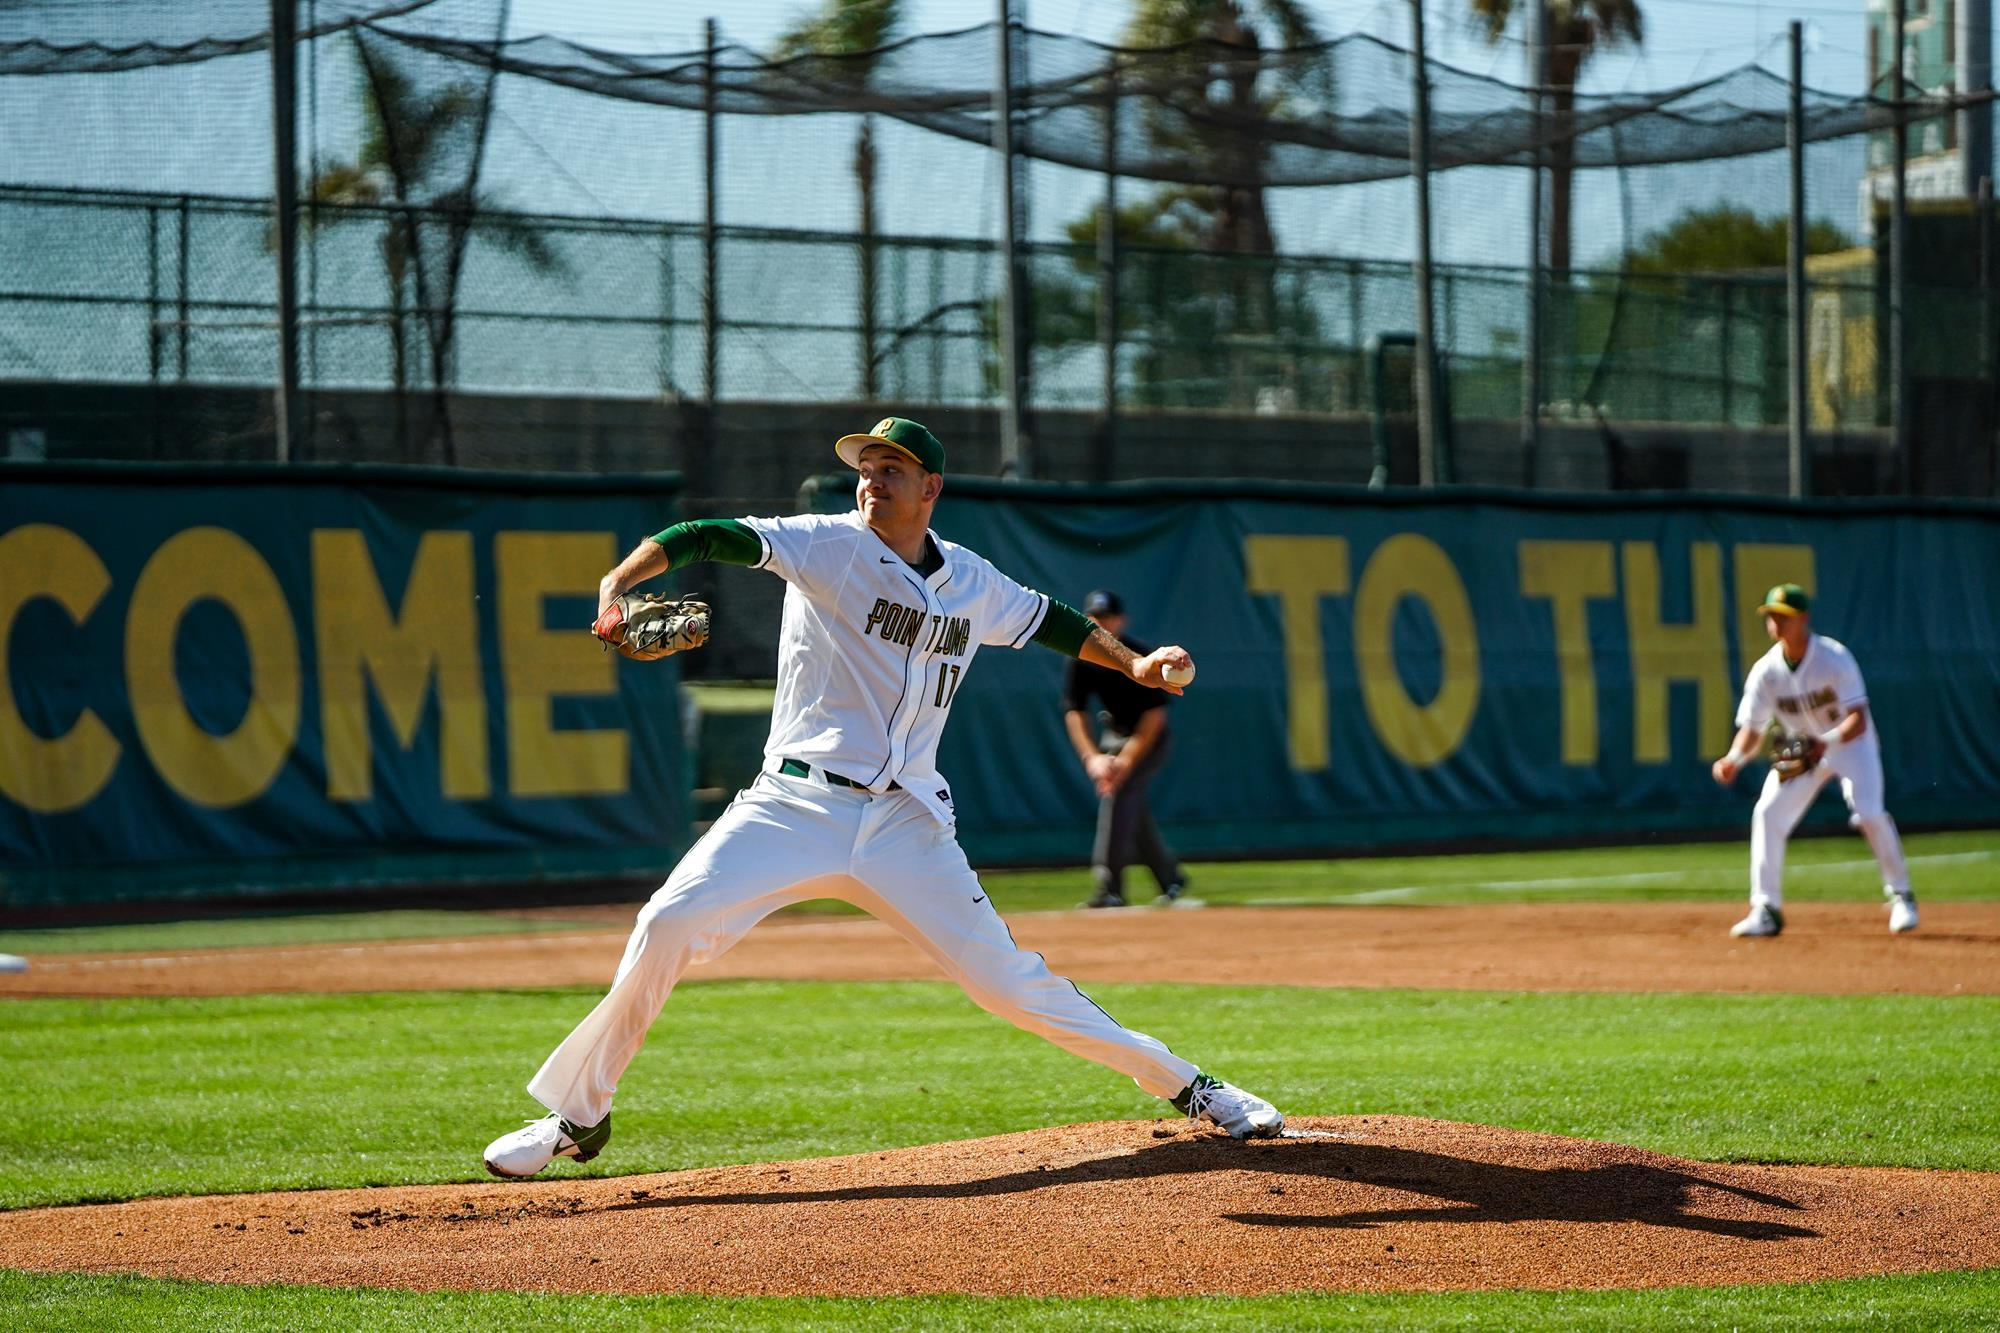 Zack Noll Baseball Plnu Athletics